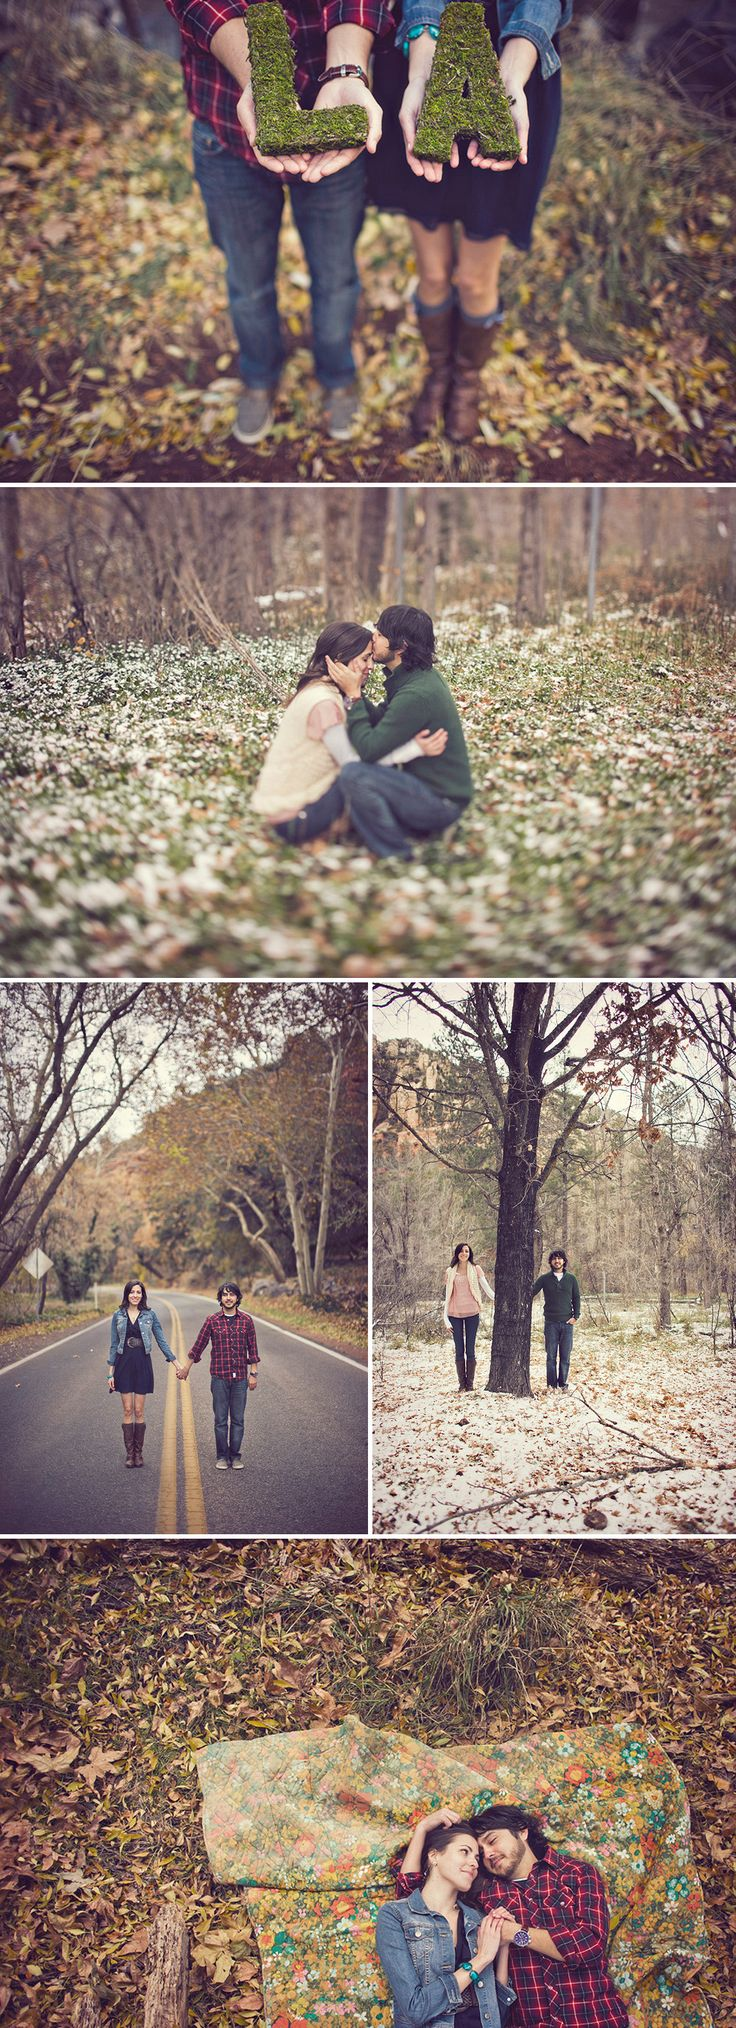 SO SWEET, ENGAGEMENT PHOTOS.